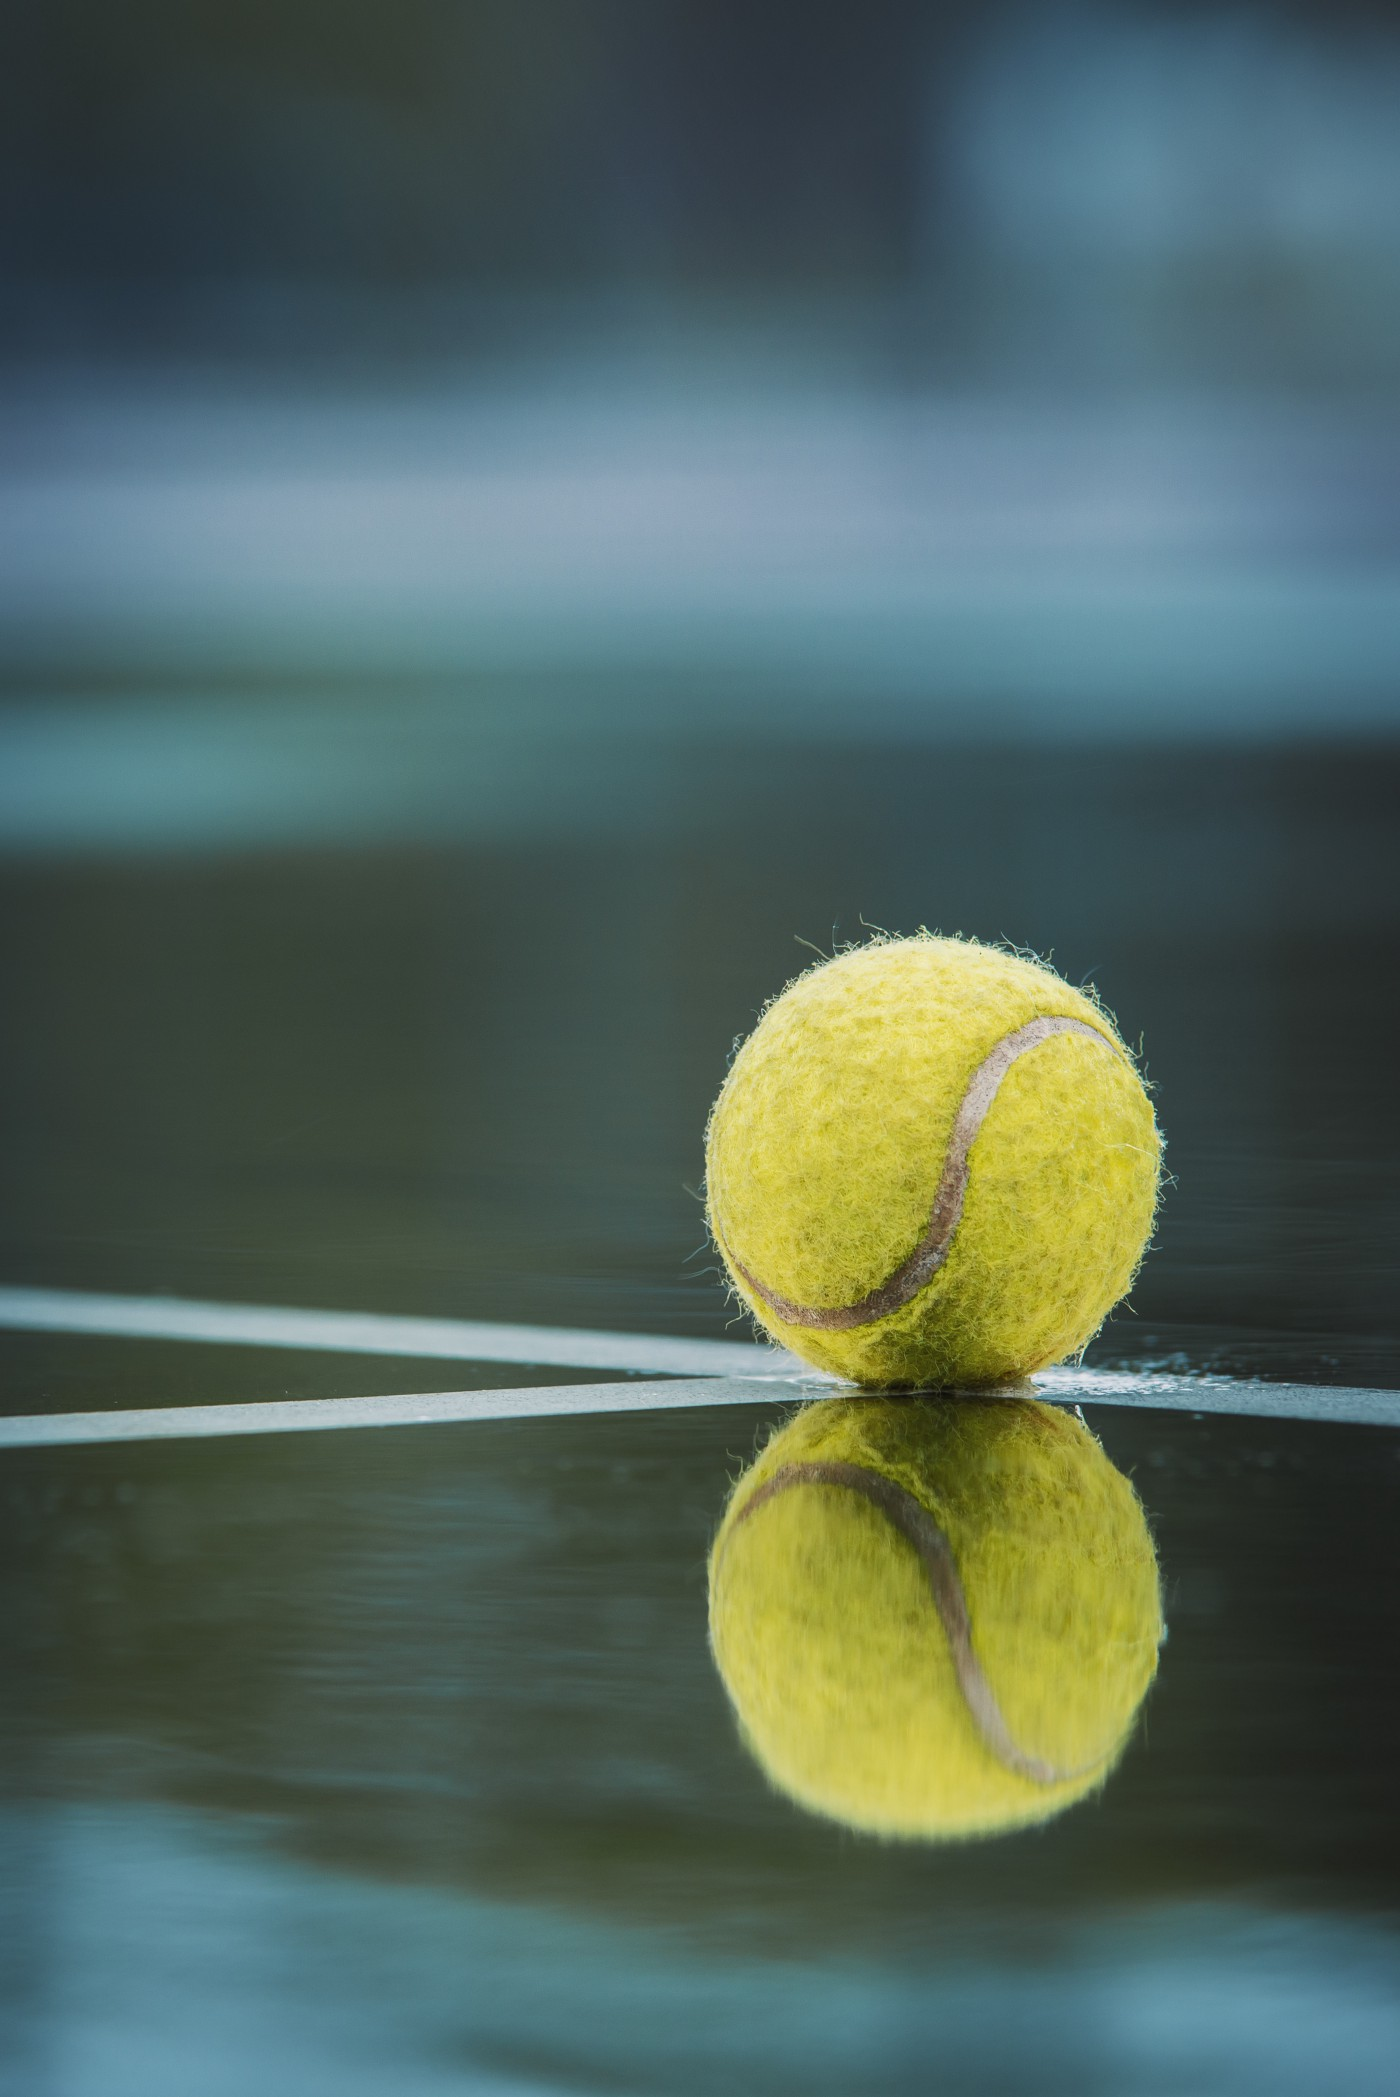 A close-up of a tennis ball landed on the corner intersection of the lines of a court. The court is glassy like a mirror and the clear reflection of the ball on the line is visible.